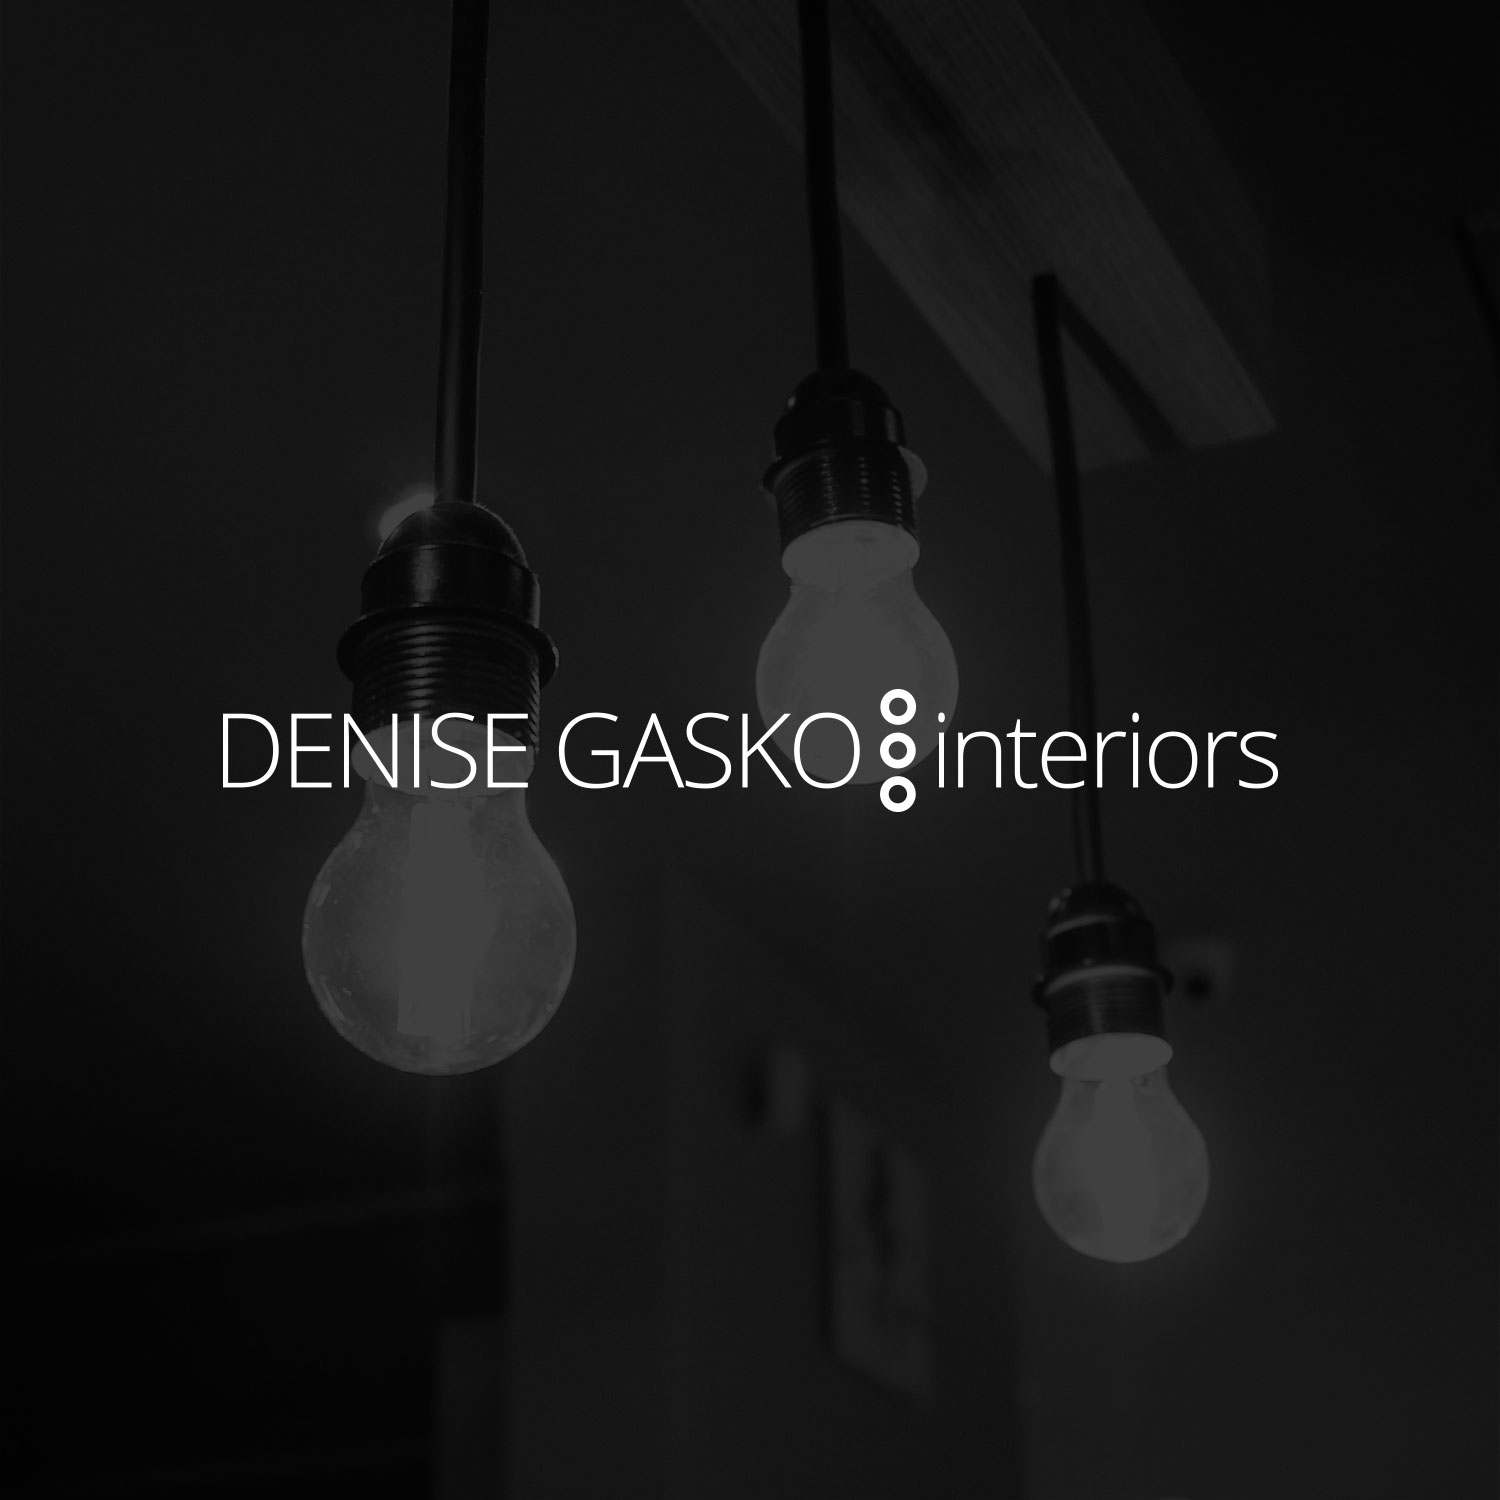 Denise Gasko Interiors